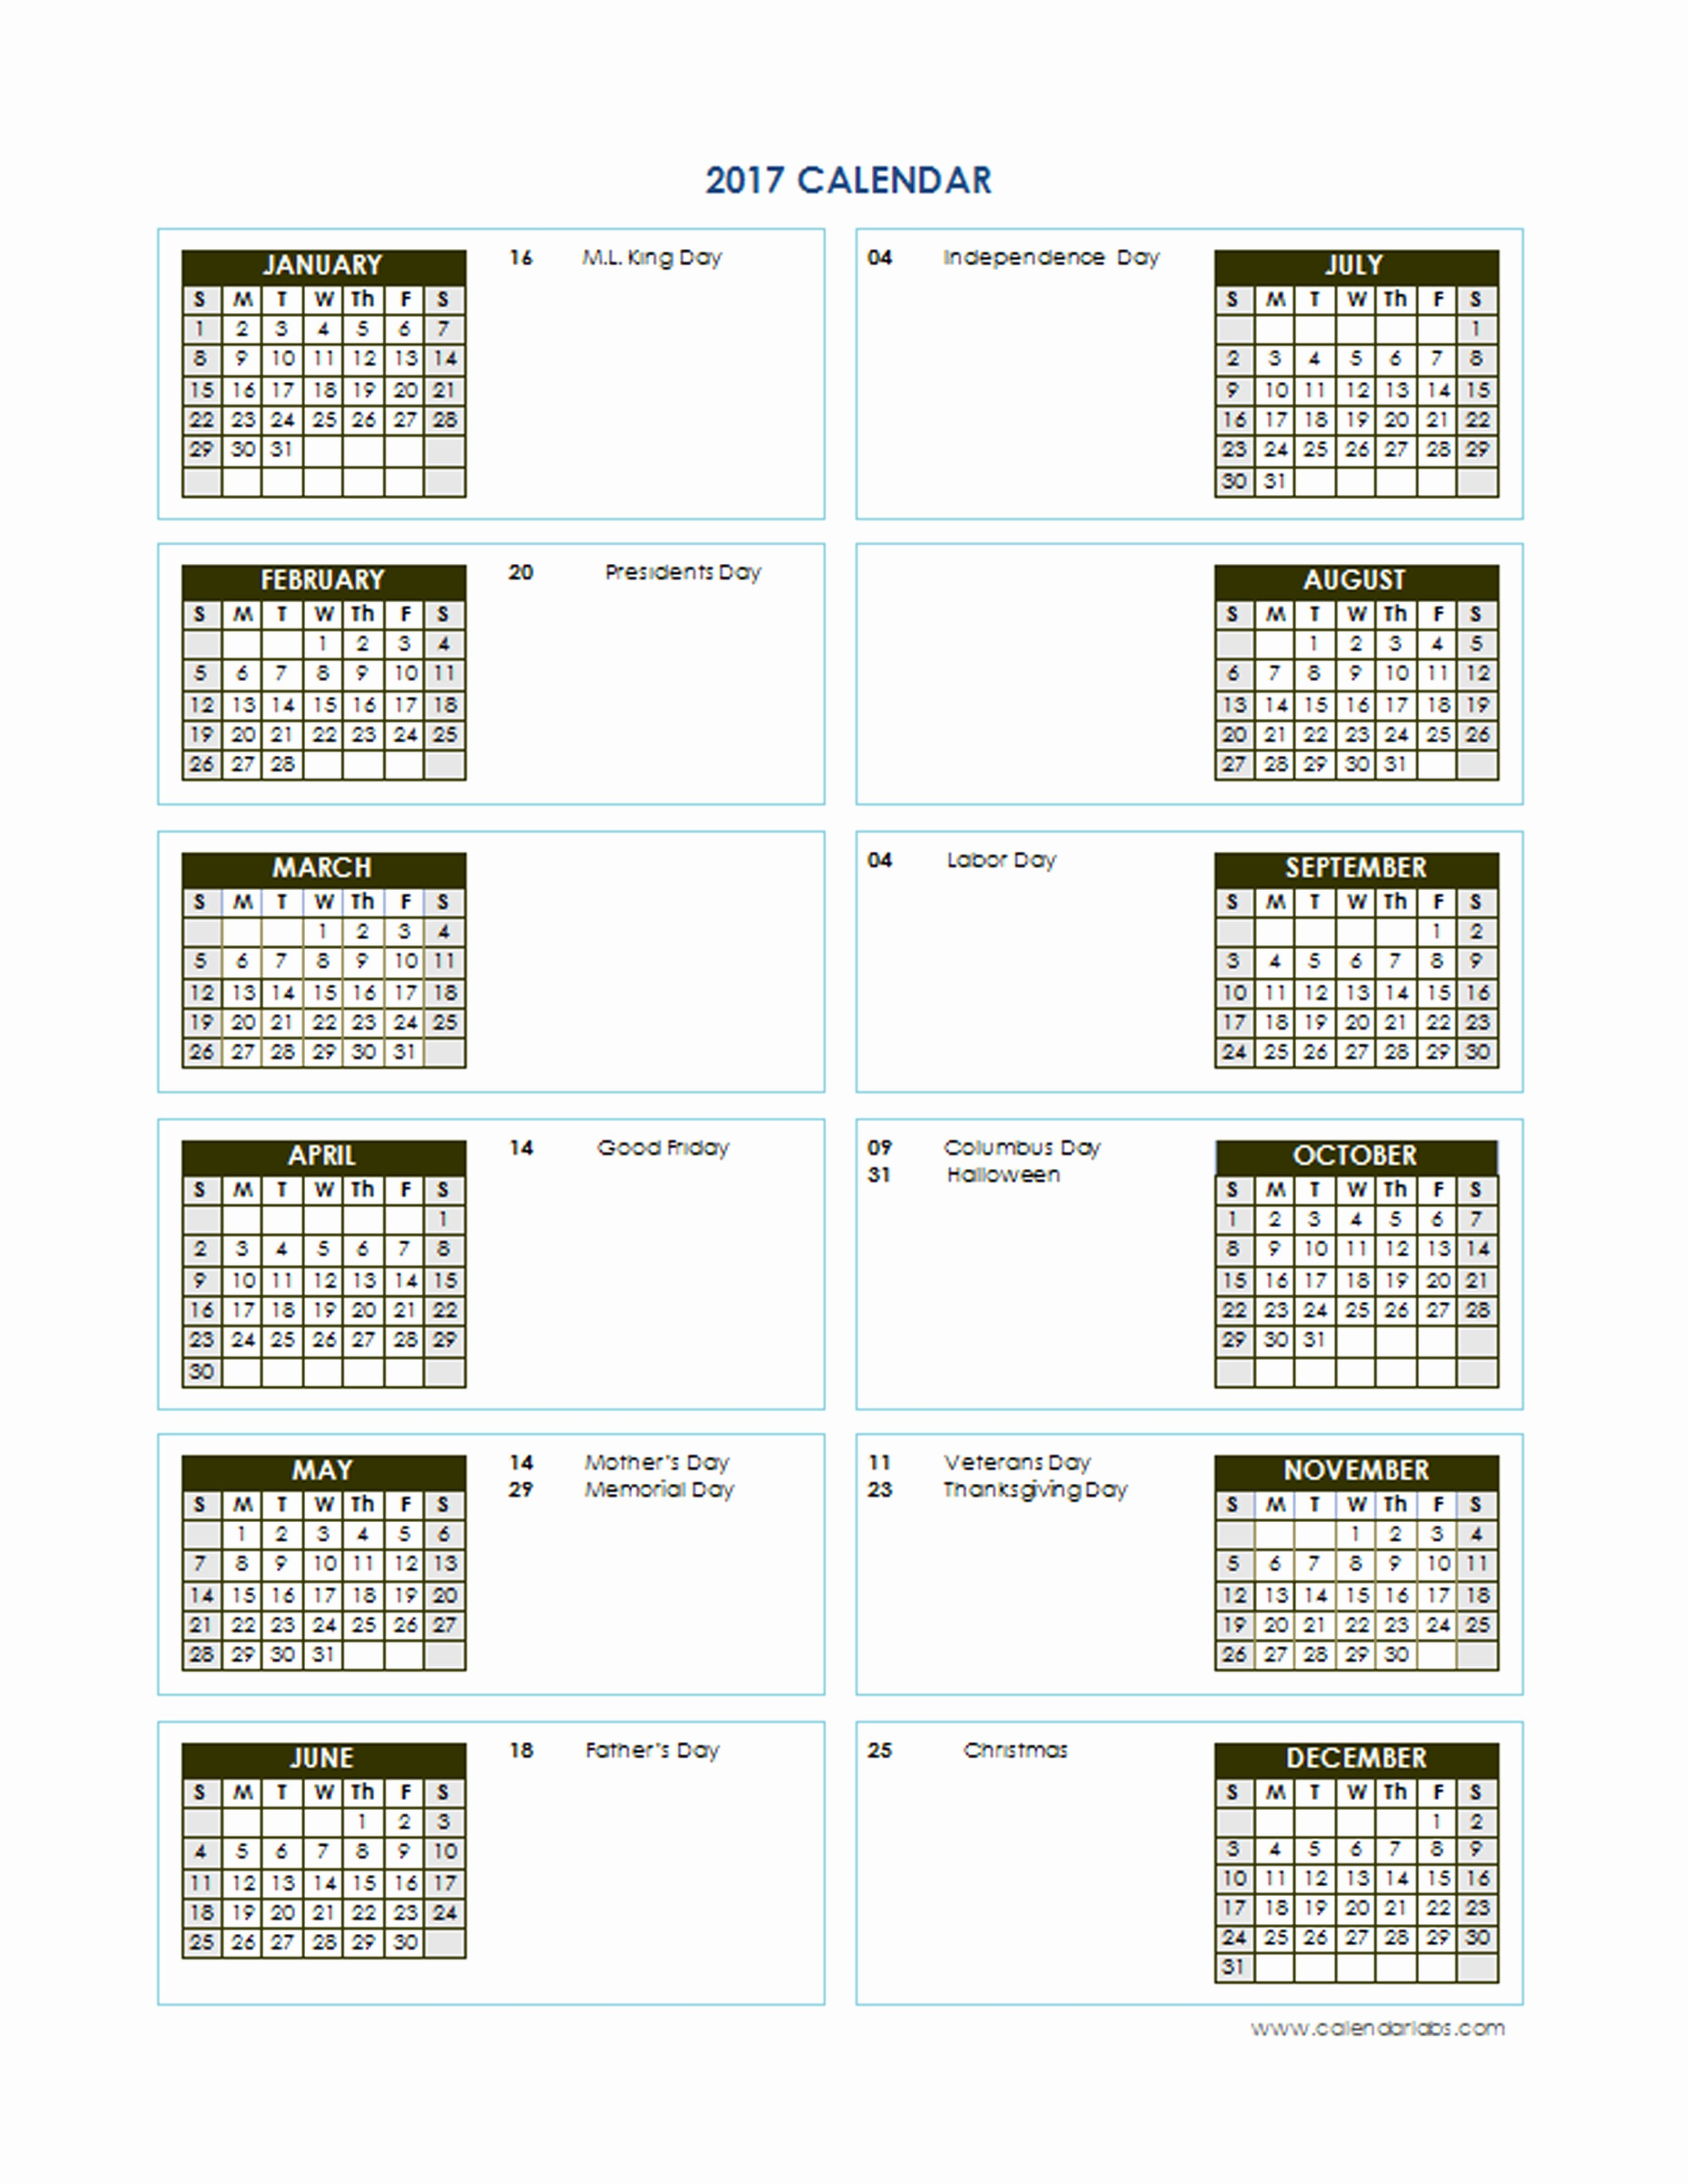 Free 2017 Yearly Calendar Template Luxury 2017 Yearly Calendar Template Vertical 02 Free Printable